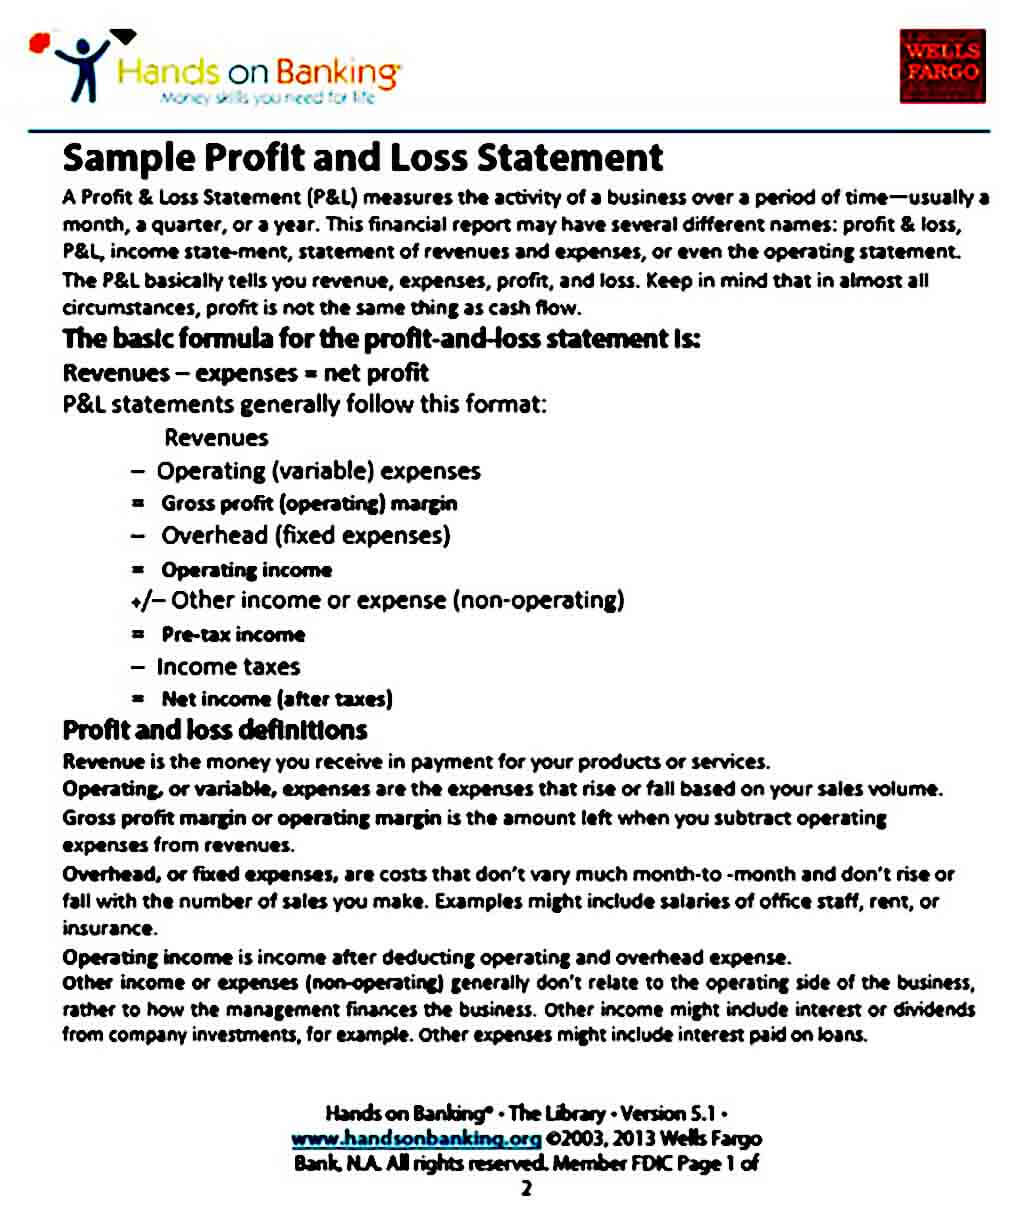 Sample Profit and Loss Statement